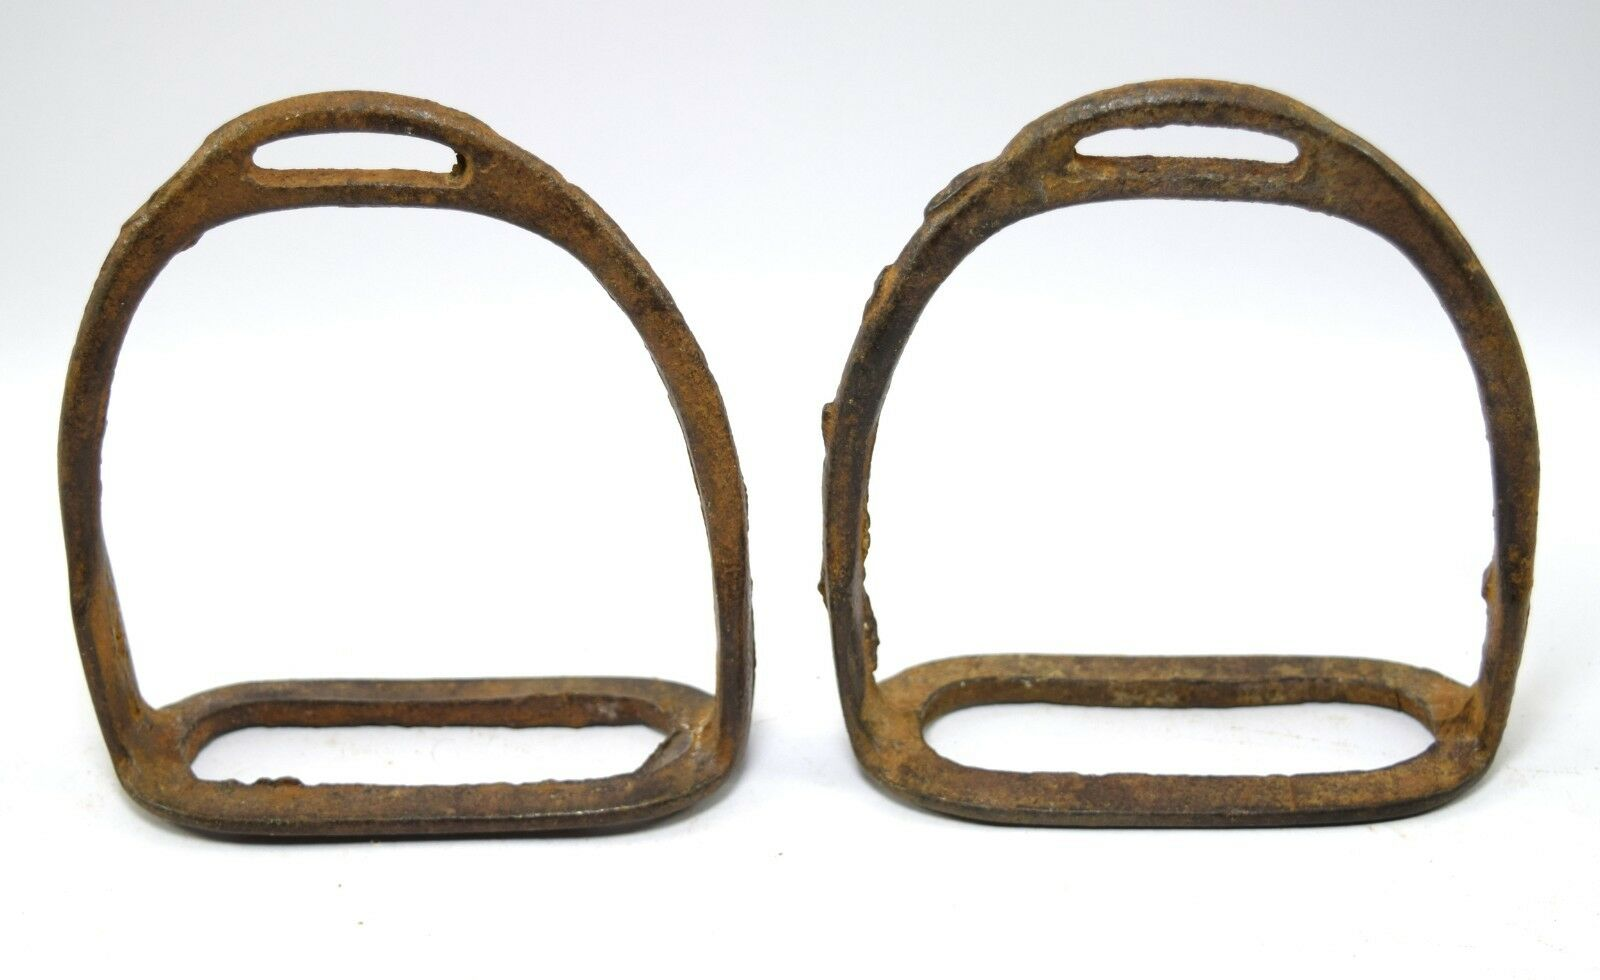 Vintage Indian Craft Horse Pedal Feet Stirrup Pair Equestrian Decor. G42-161 US